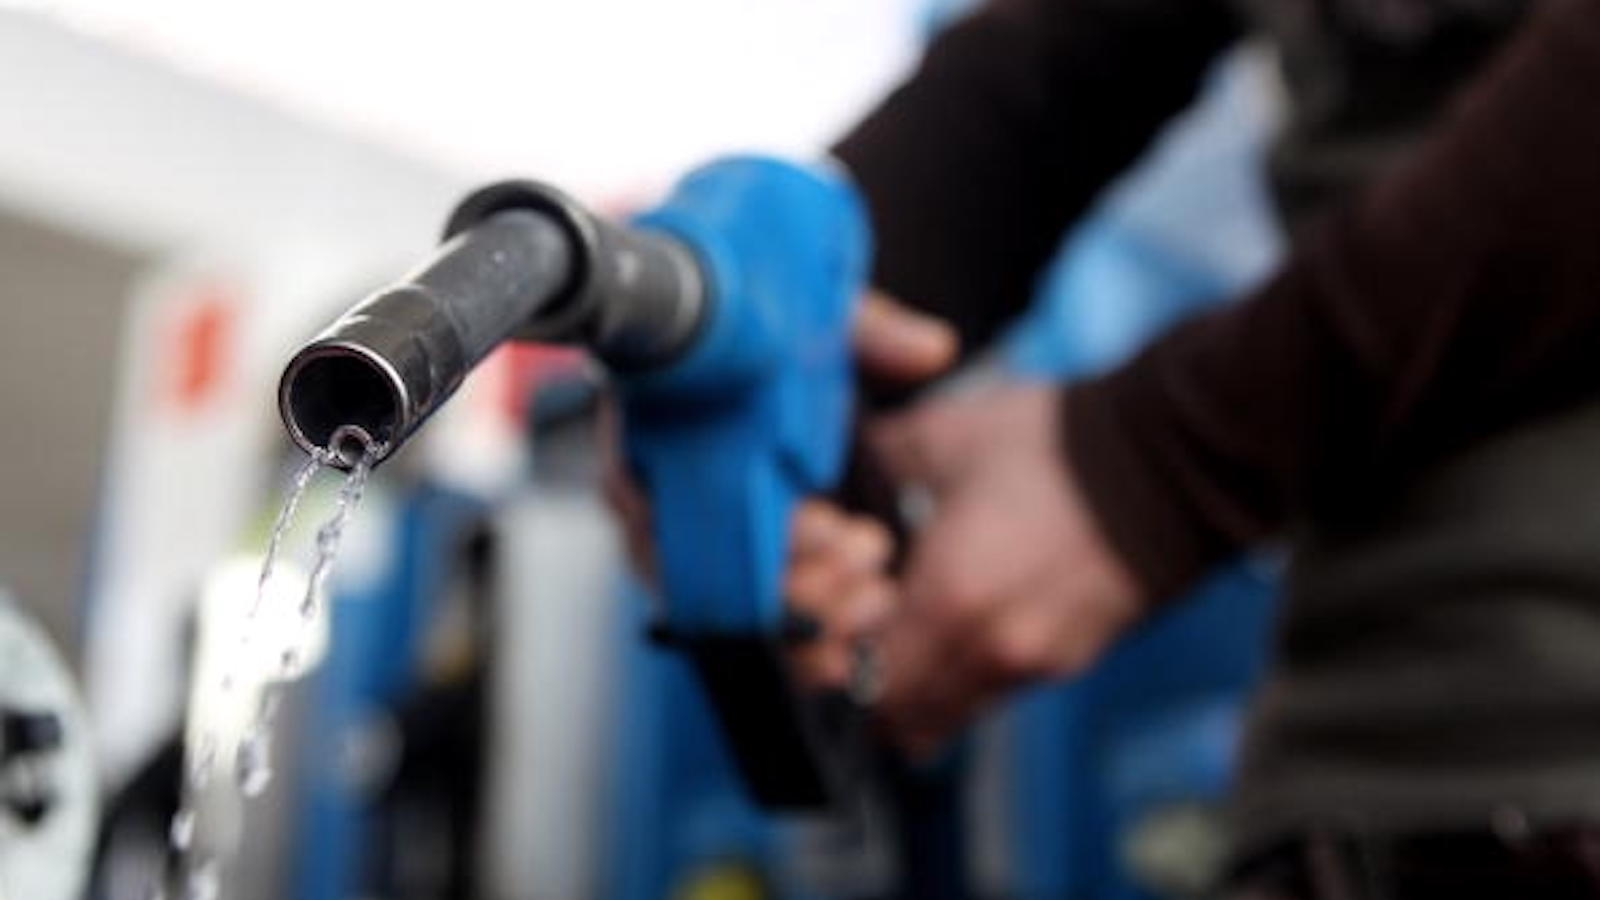 A Massachusetts city will post climate change warning stickers at gas stations thumbnail